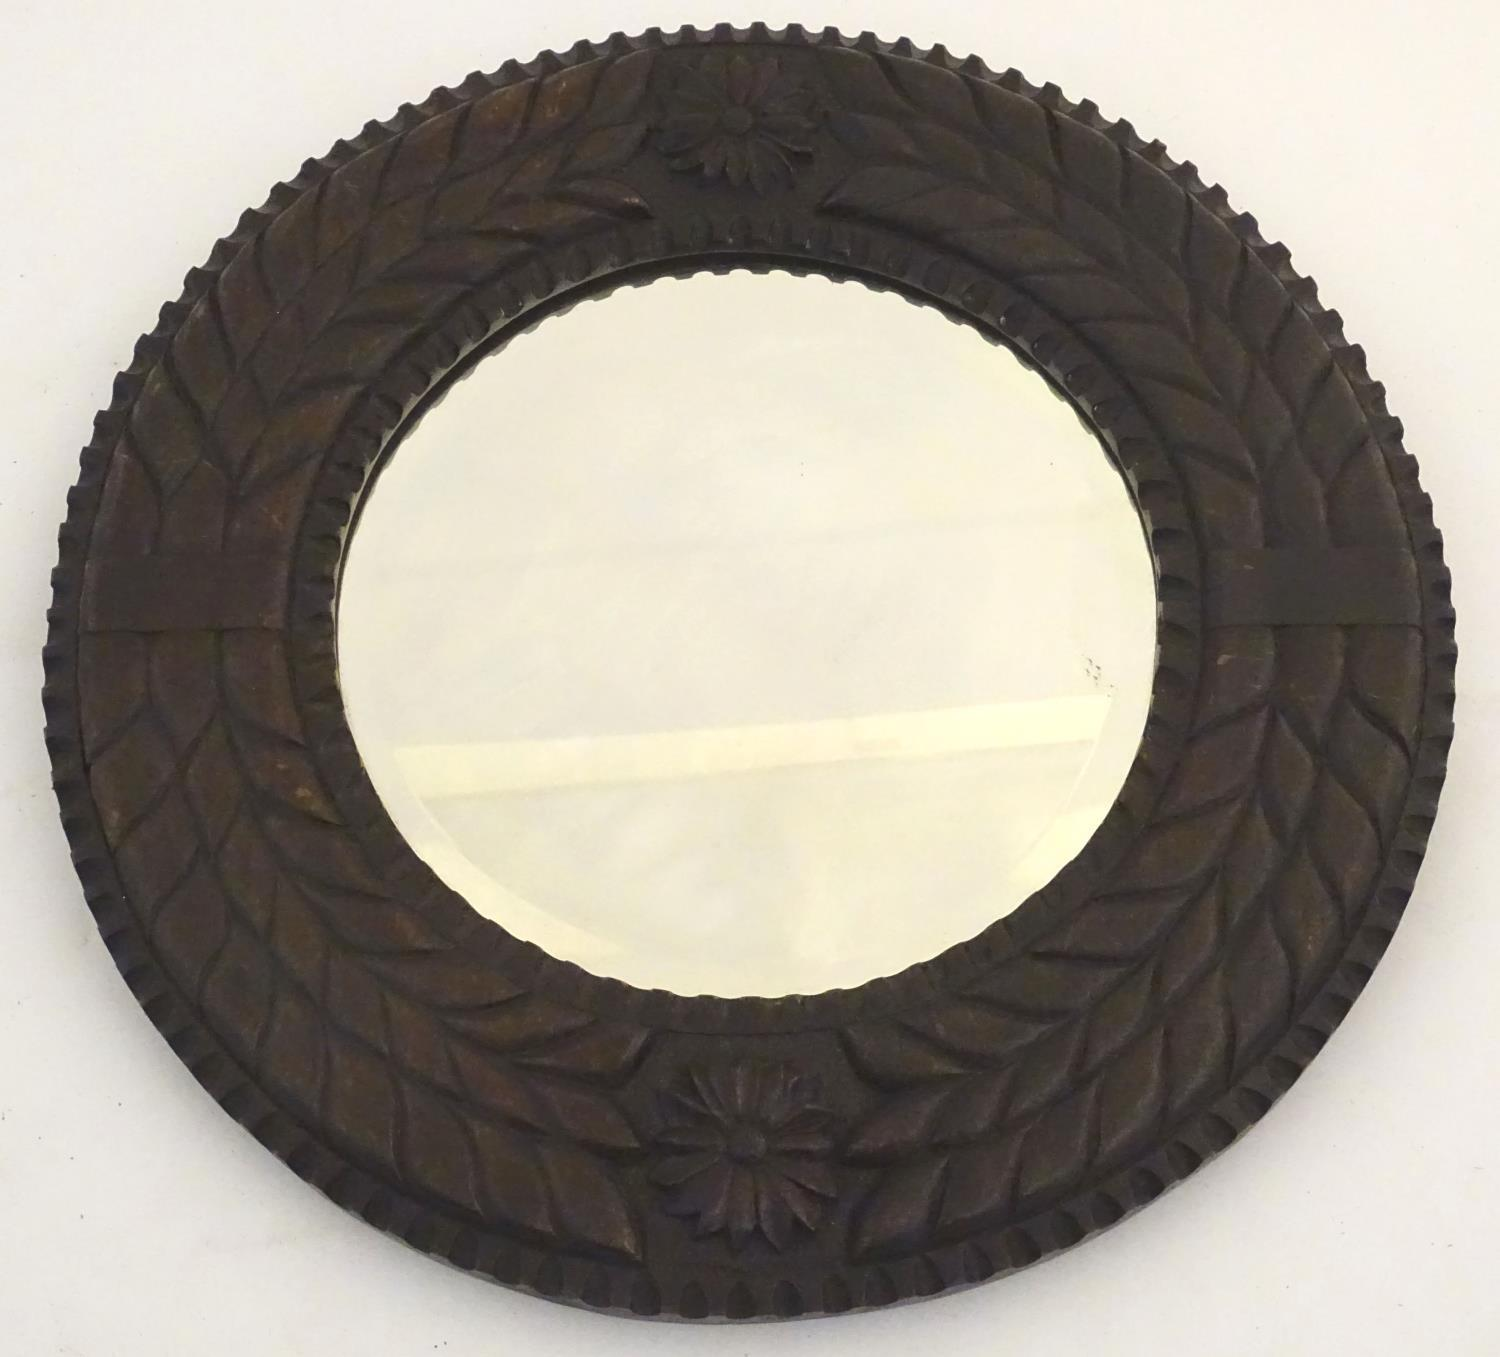 Lot 888 - A late 19th / early 20thC circular mirror with bevelled glass within a carved mahogany frame with